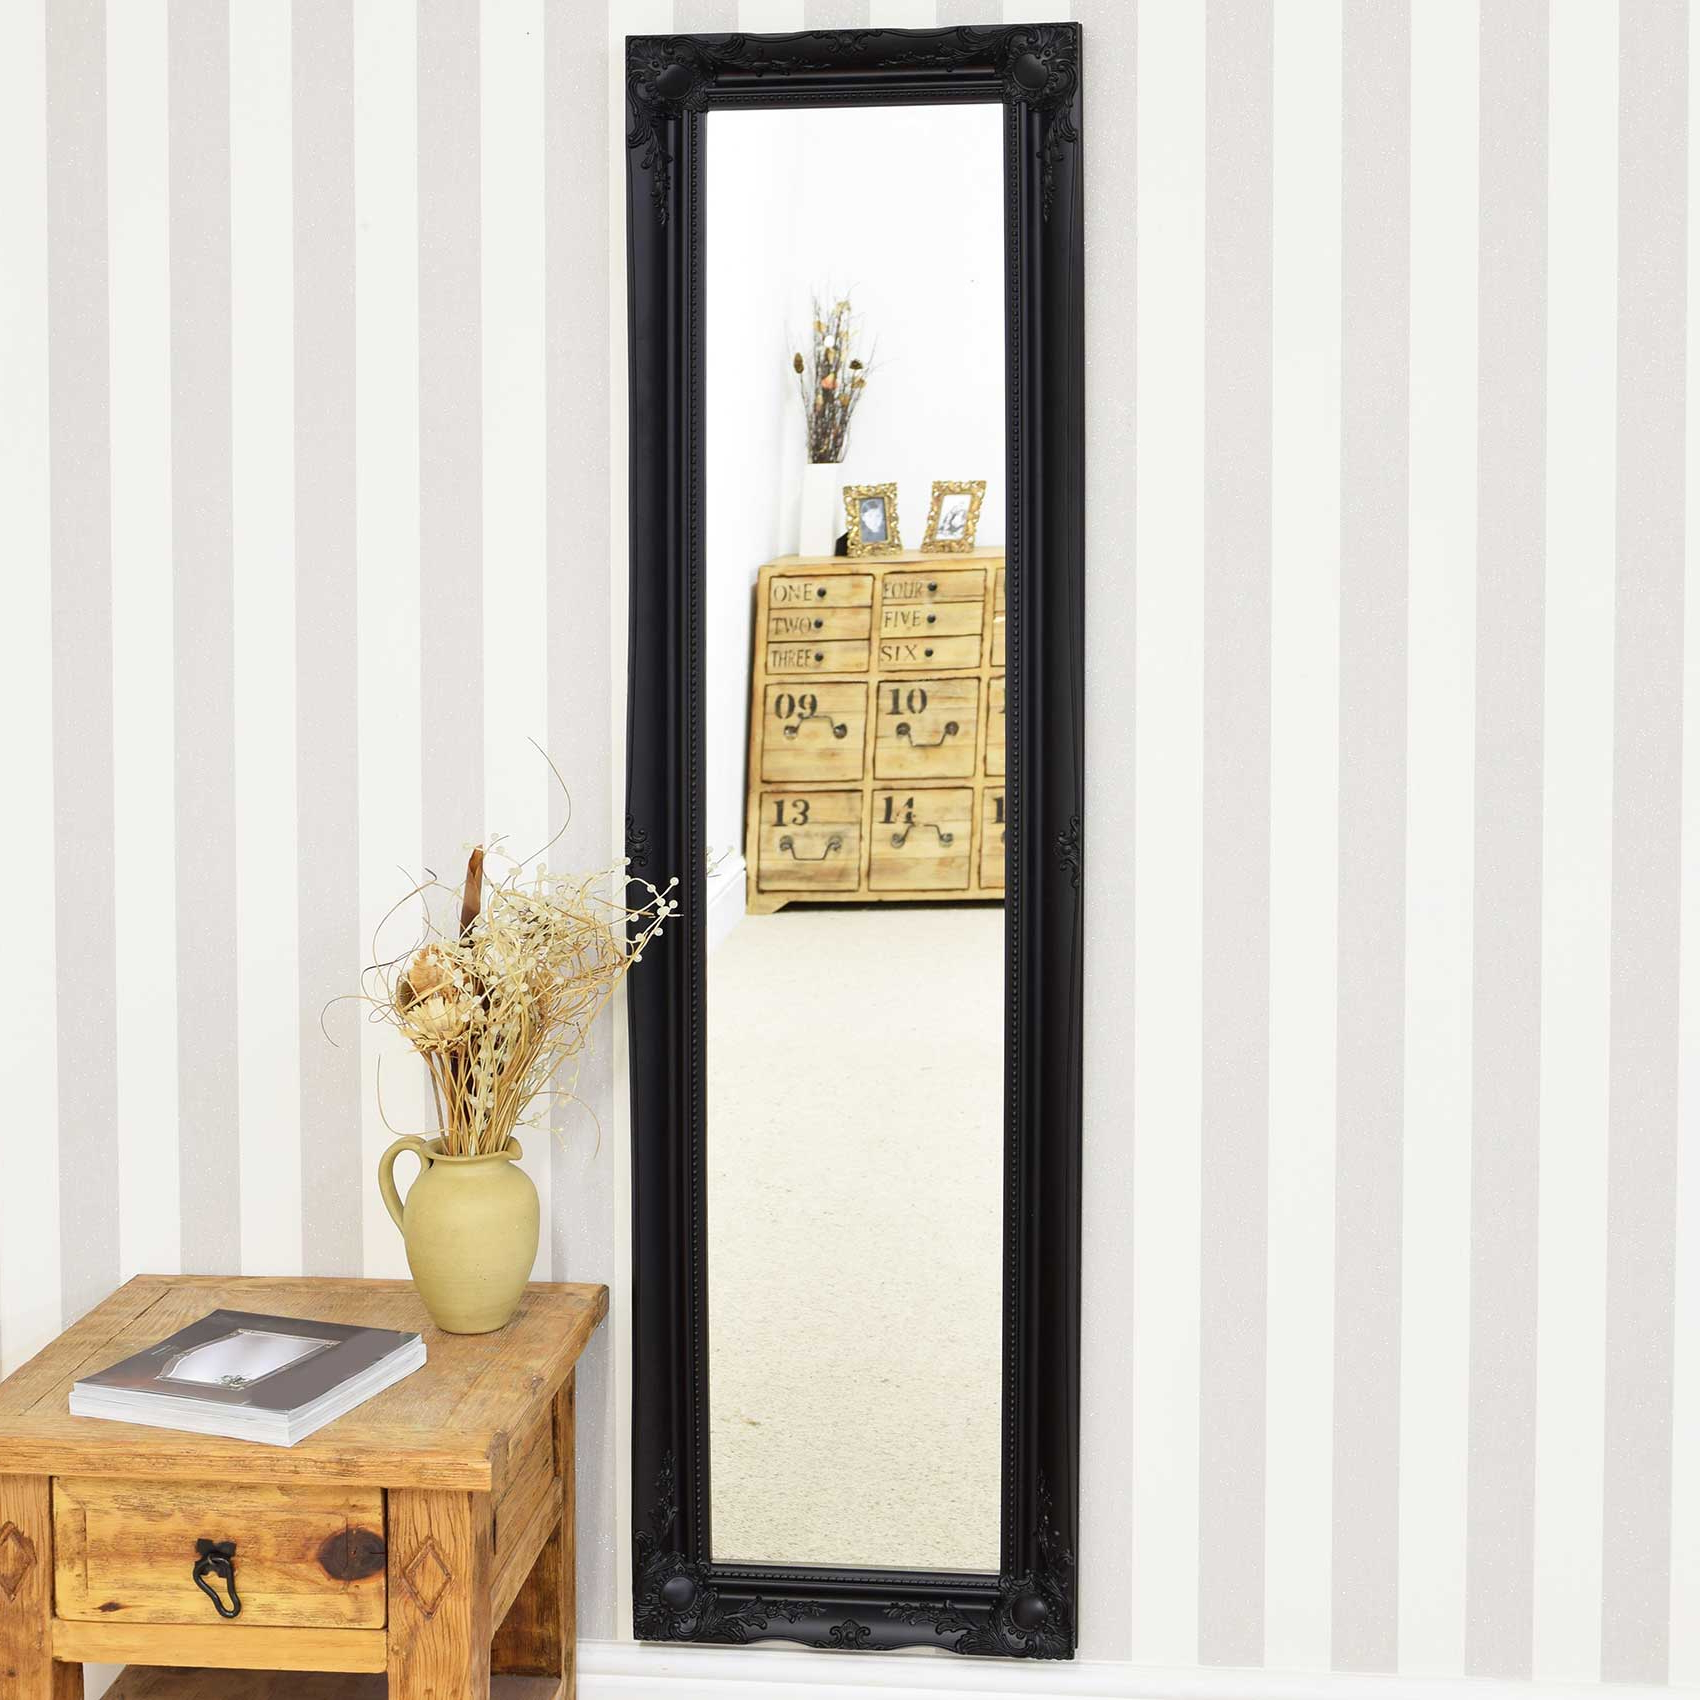 Recent Full Length Decorative Wall Mirrors Throughout Details About Large Wall Mirror 5Ft6 X 1Ft6 Black Full Length Classic  Ornate Decorative (Gallery 10 of 20)